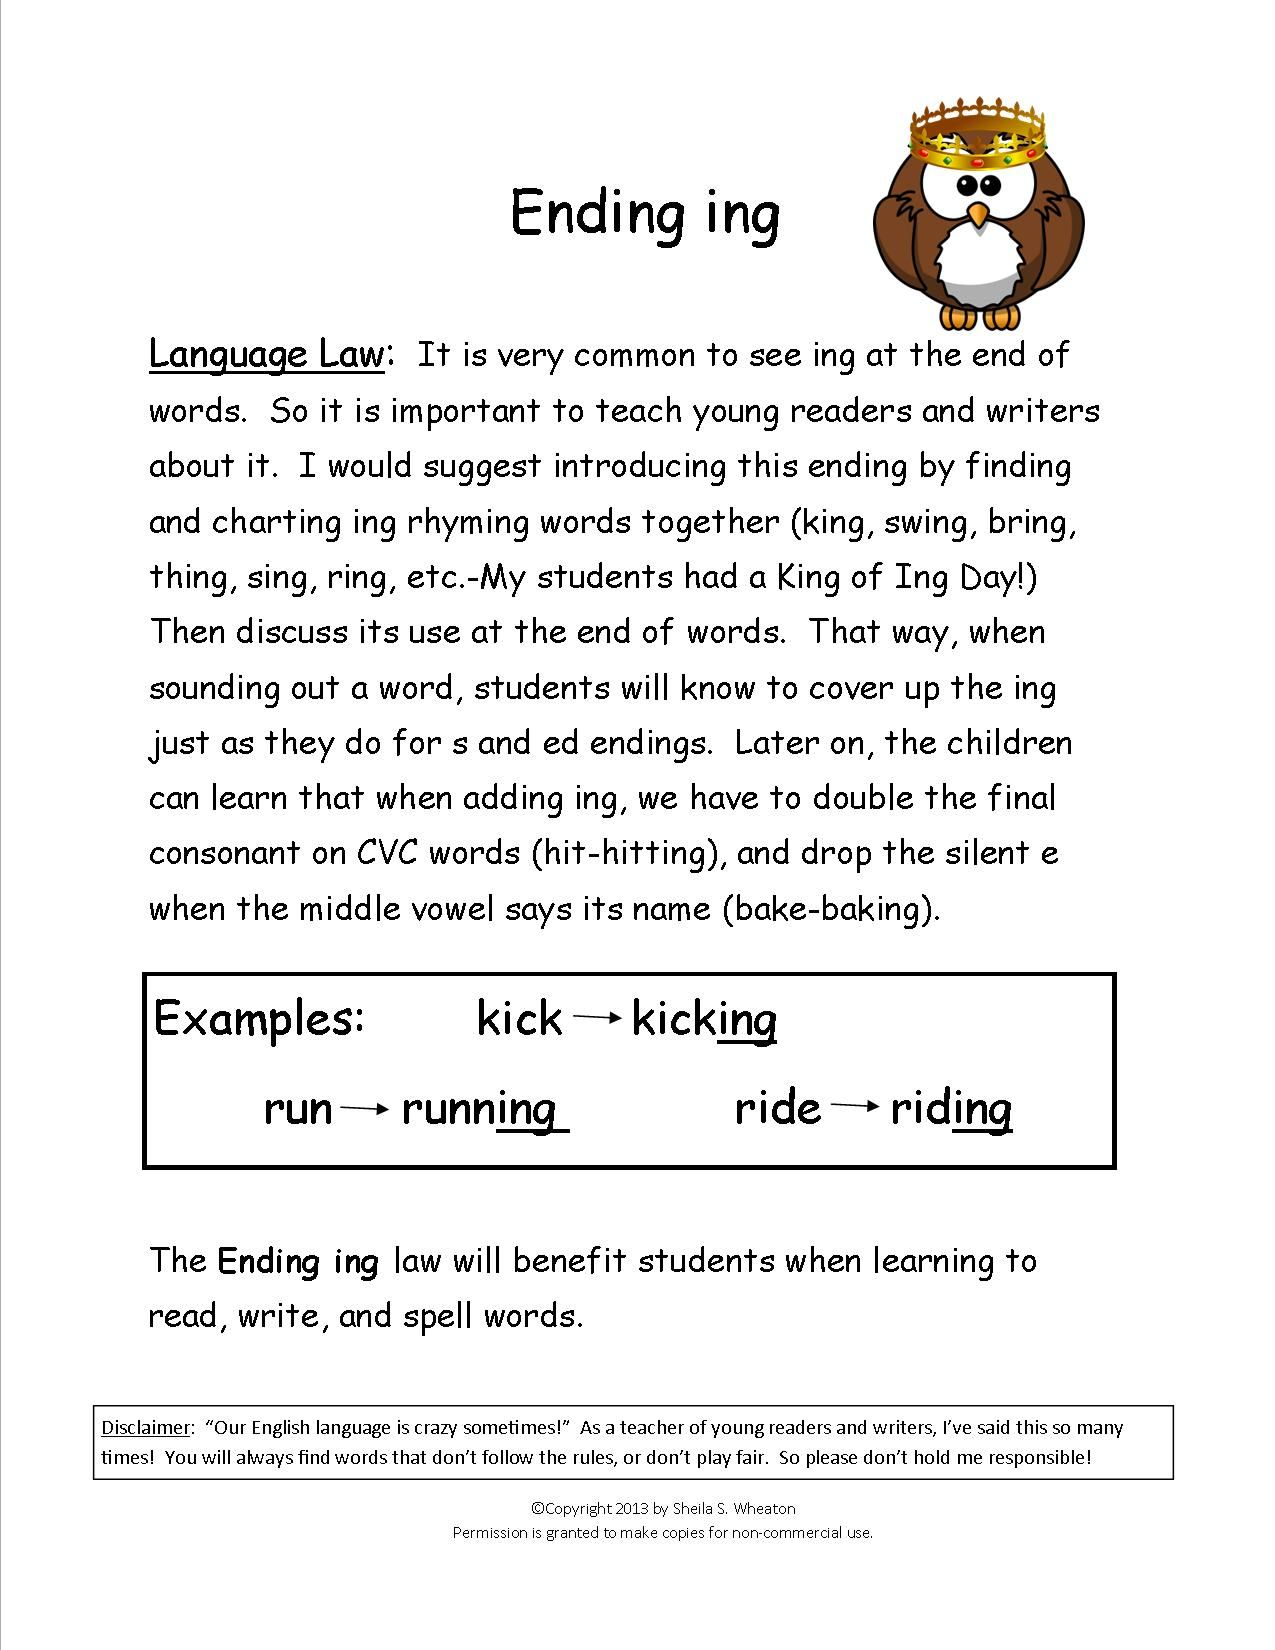 Ending Ing Adding Ing To The End Of Words